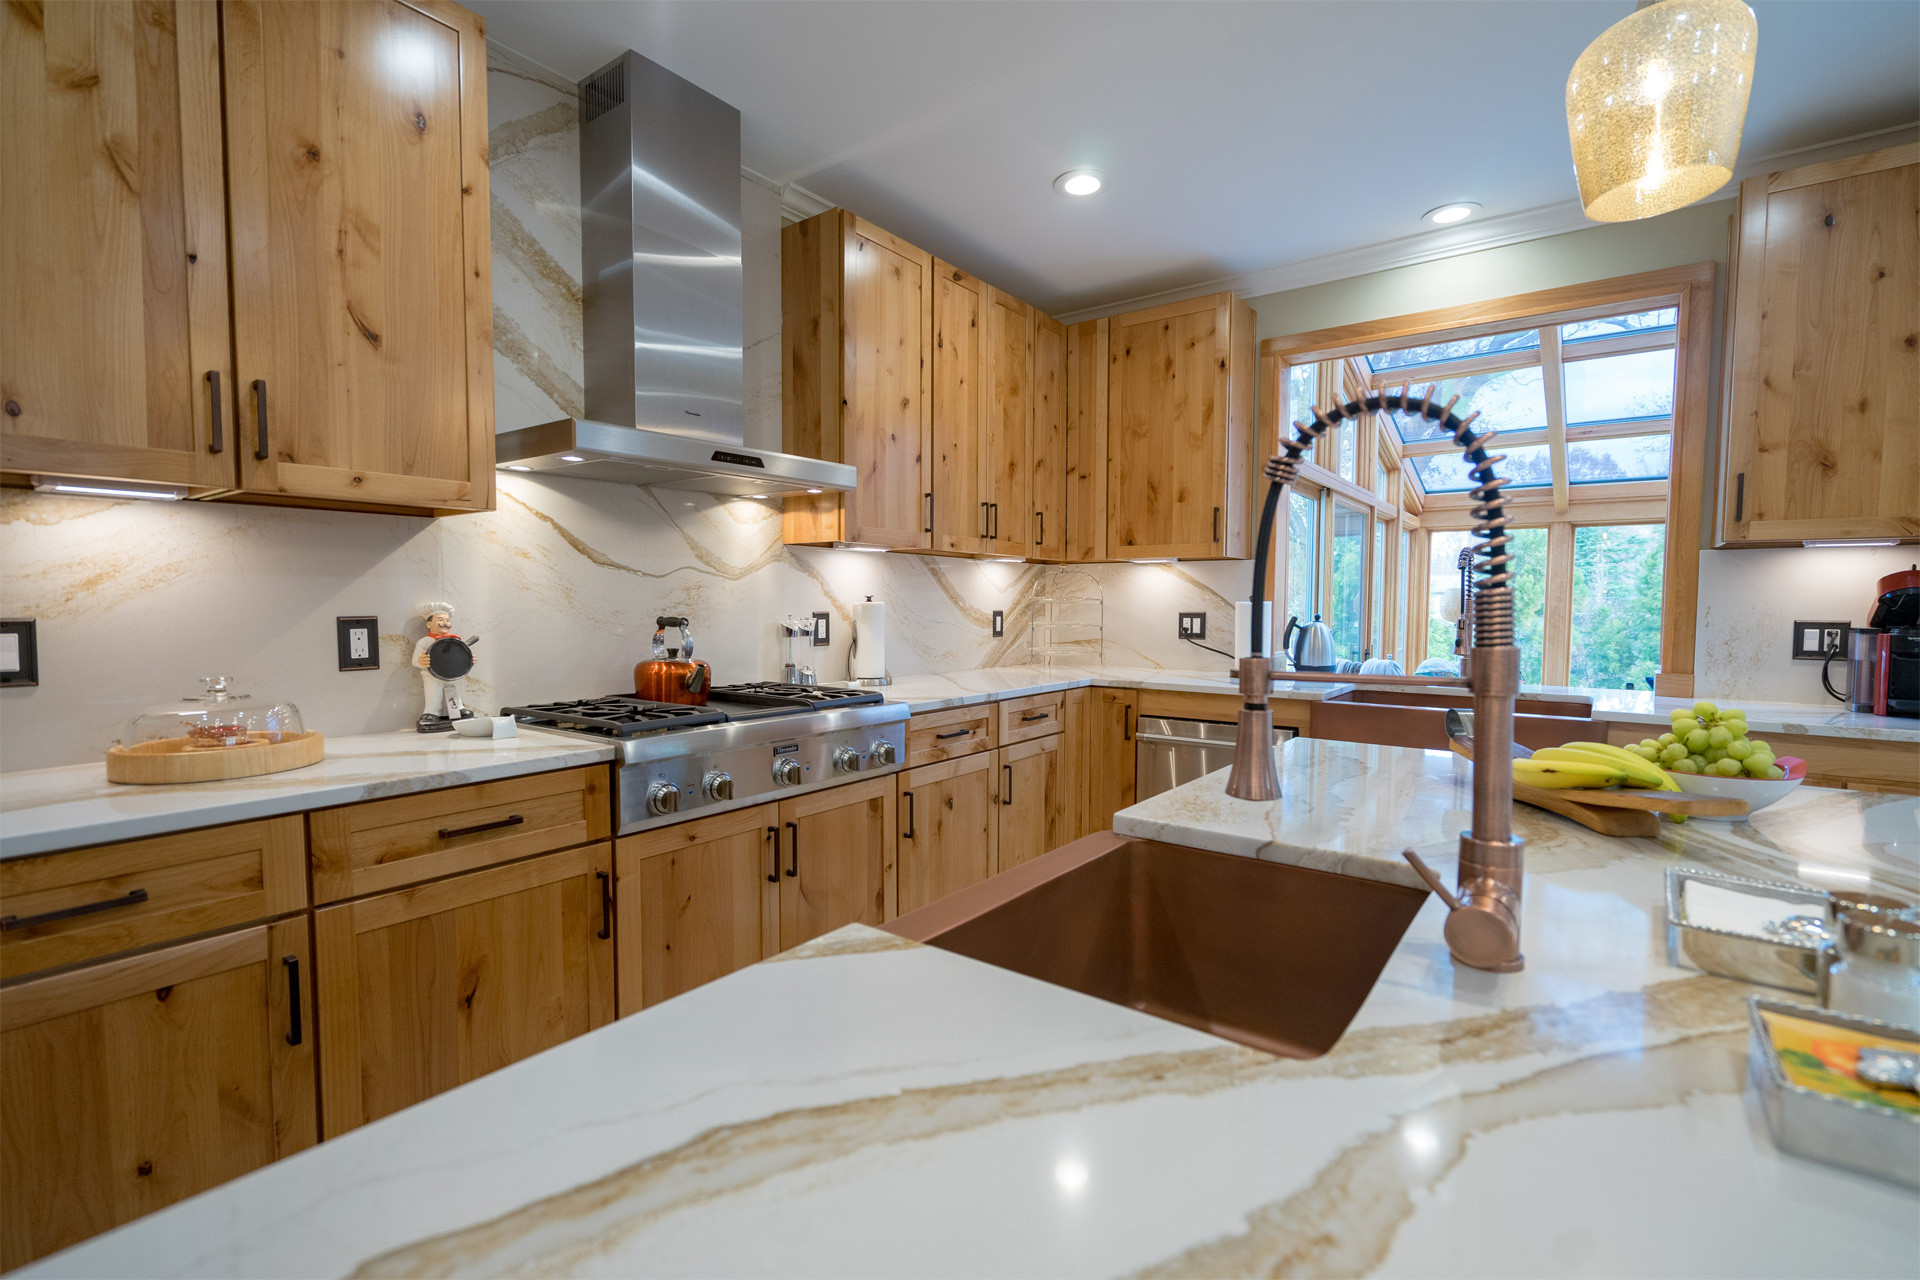 Kitchen Remodeling Ideas Pictures  Kitchen Remodeling Ideas 12 Amazing Design Trends in 2020